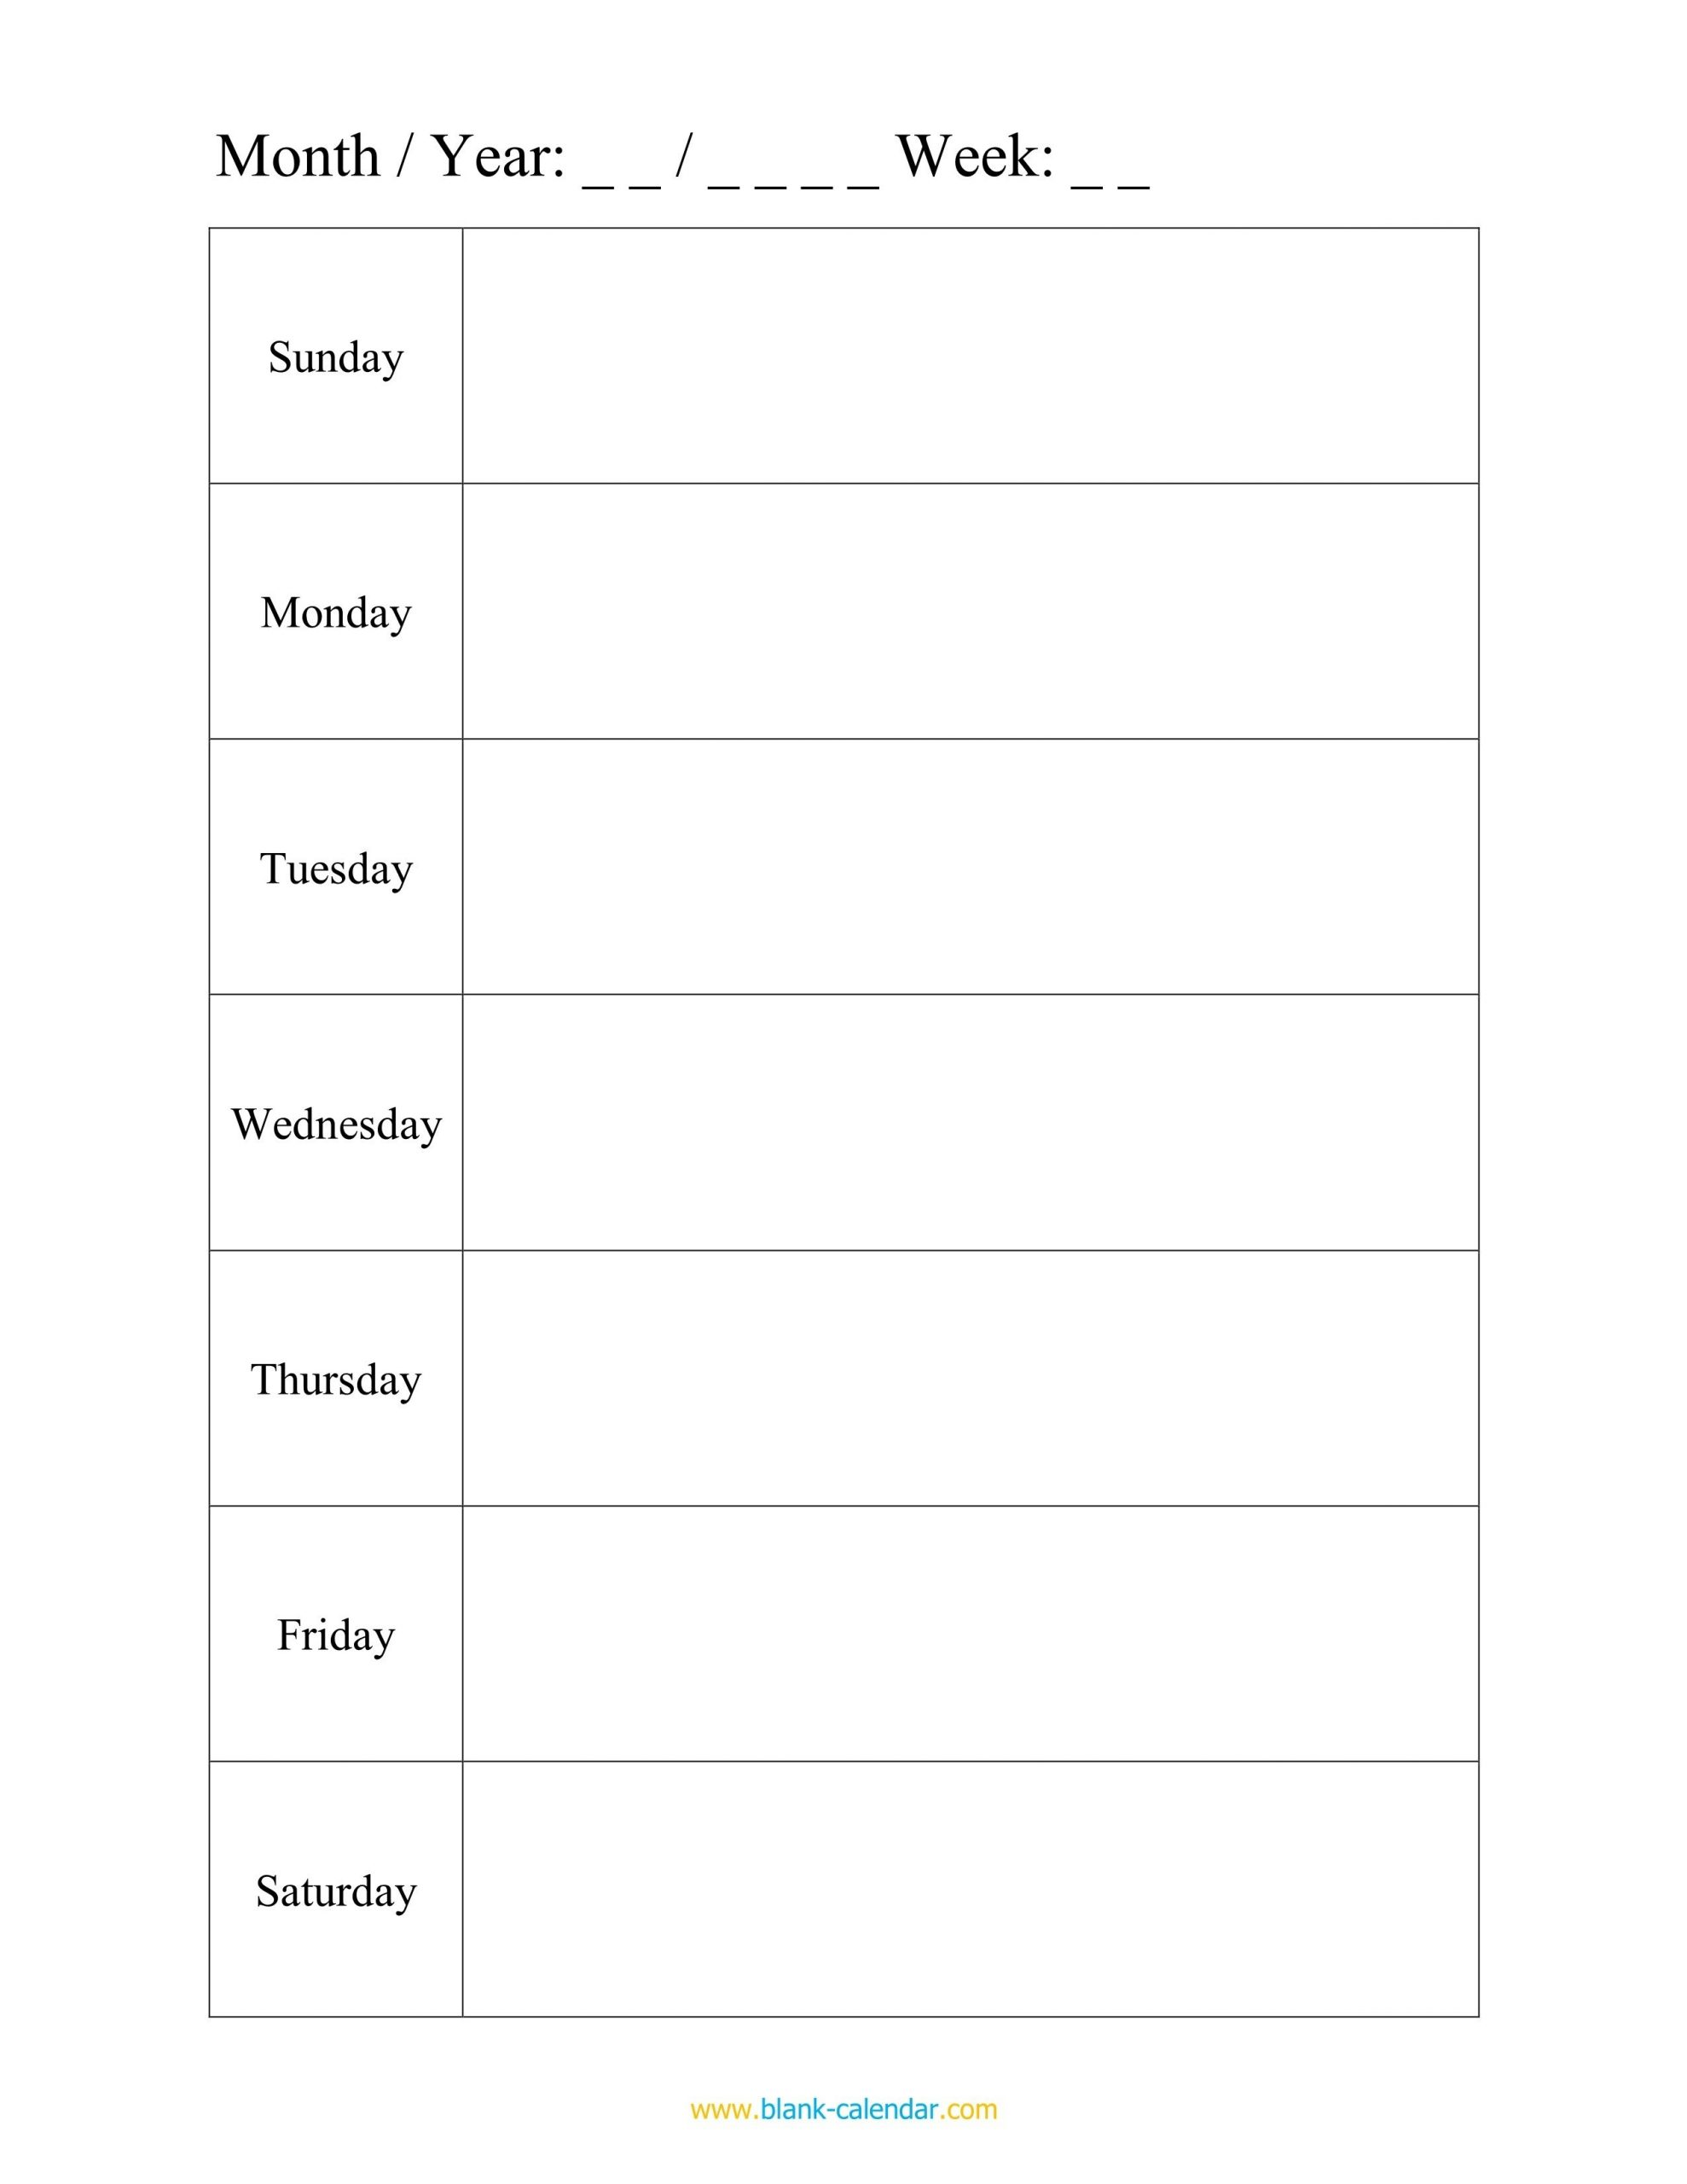 Monday Through Friday Planning Template | Calendar Monday Through Friday Planner Template